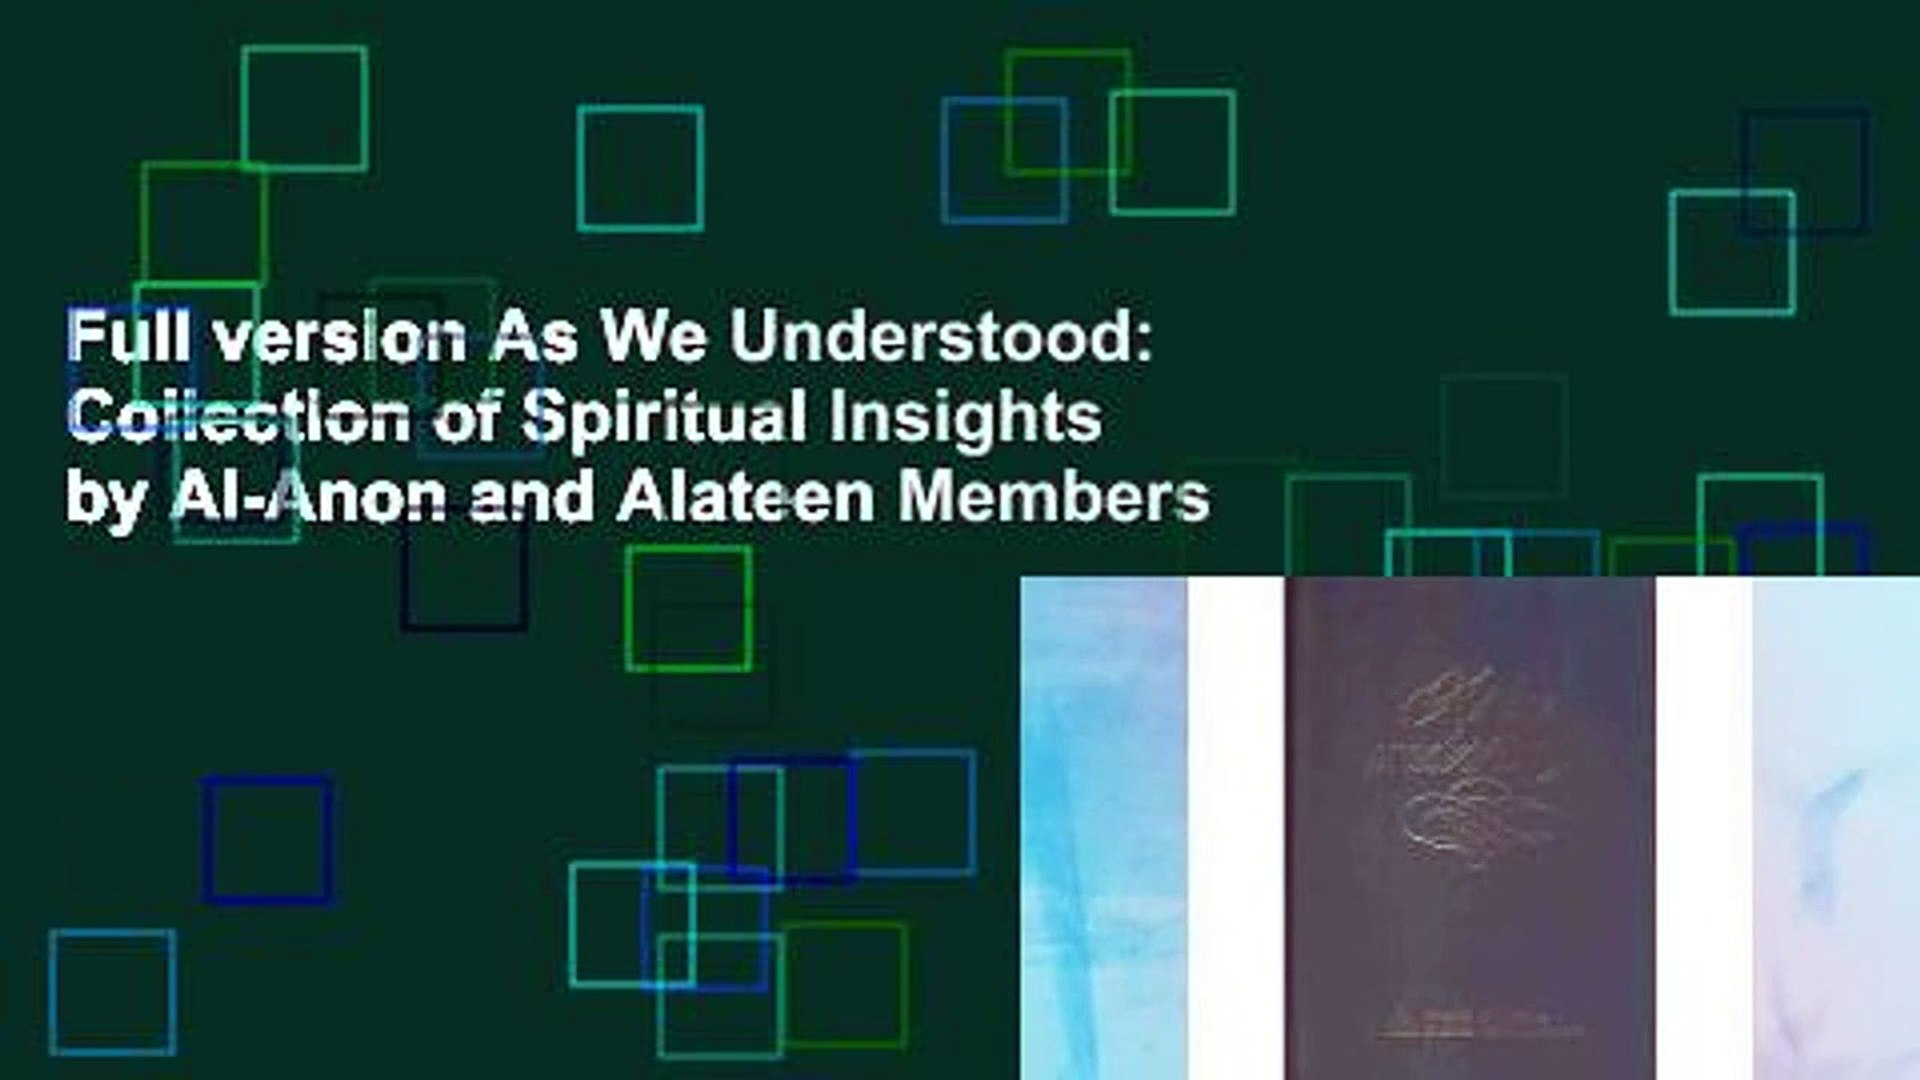 Full version As We Understood: Collection of Spiritual Insights by Al-Anon and Alateen Members